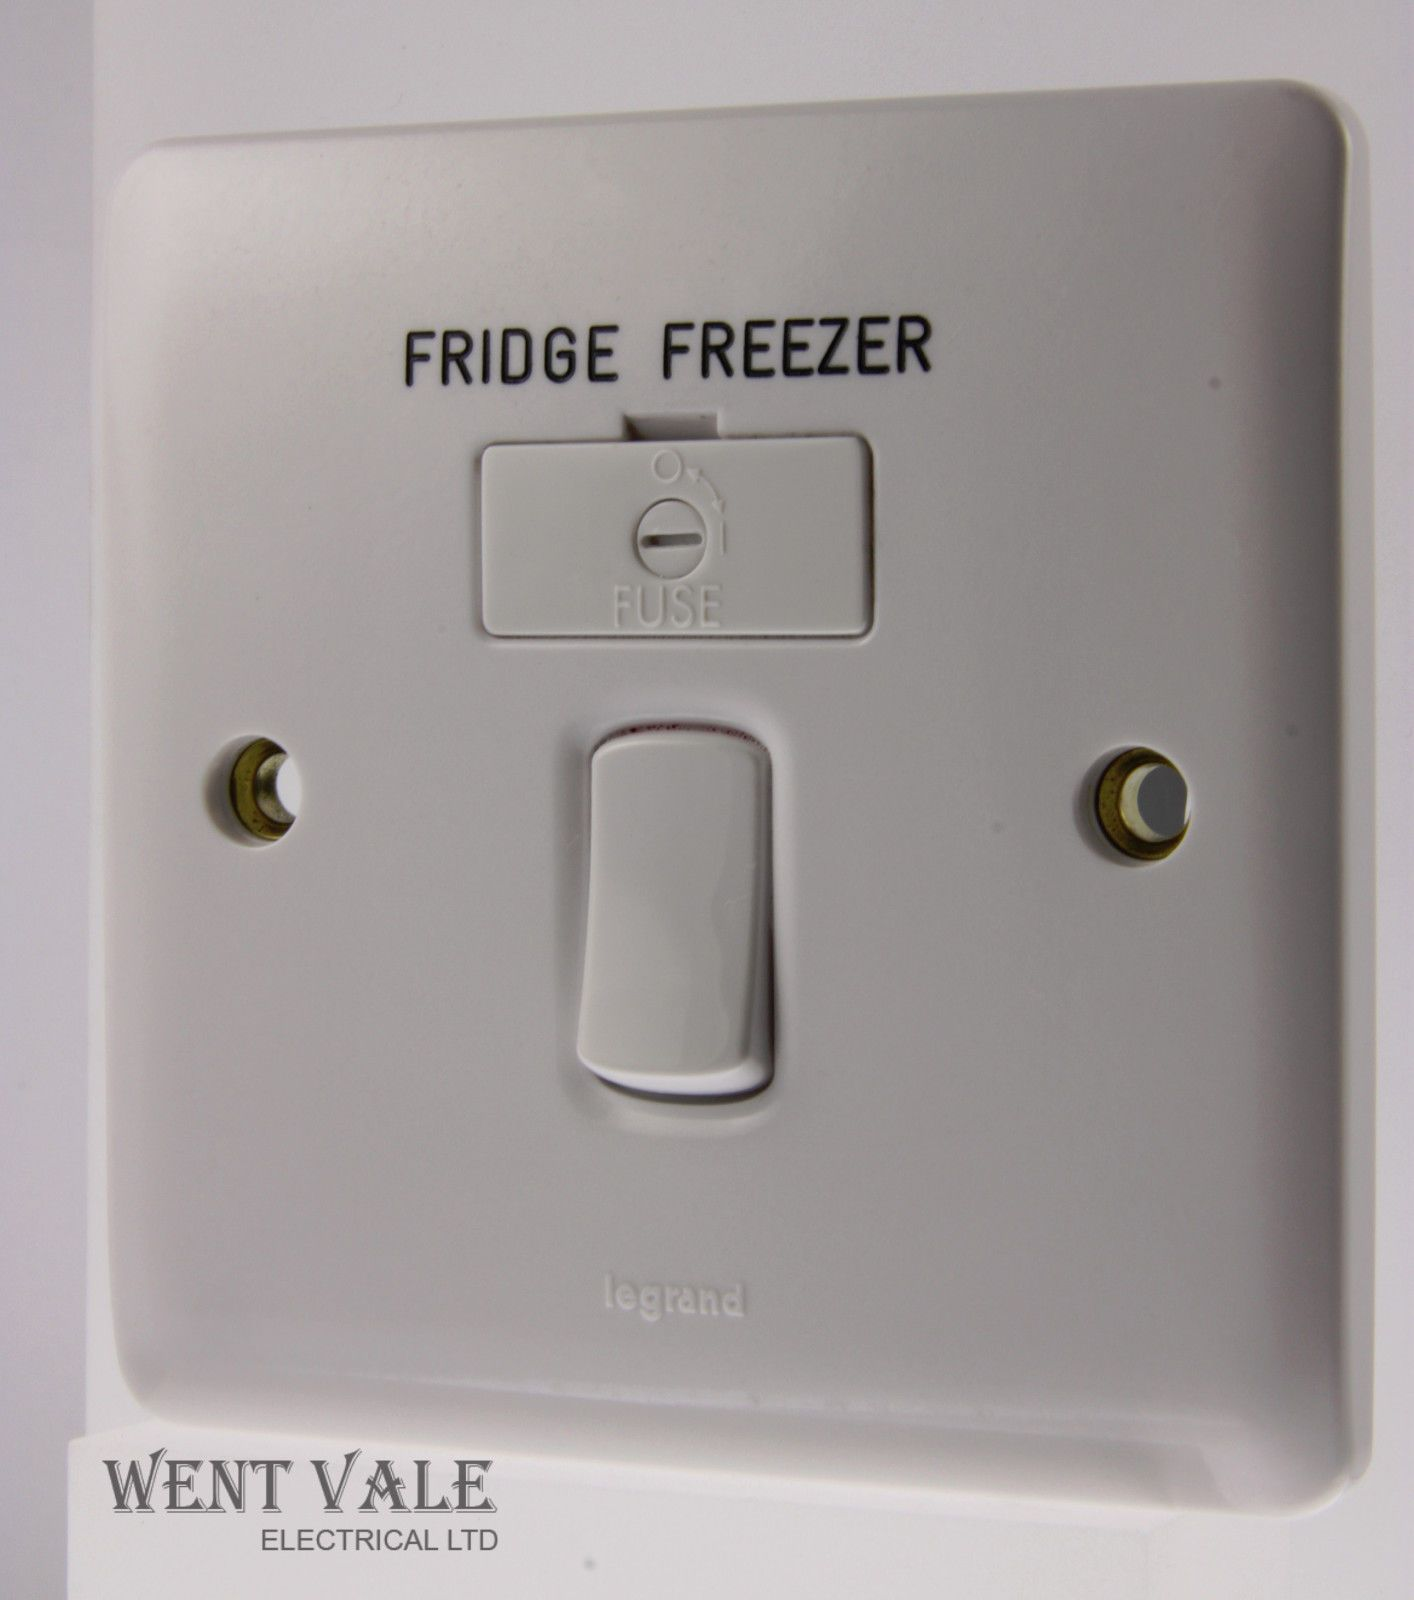 Legrand Synergy 7300 34ff 13a Switched Fused Spur Engraved Fridge Freezer